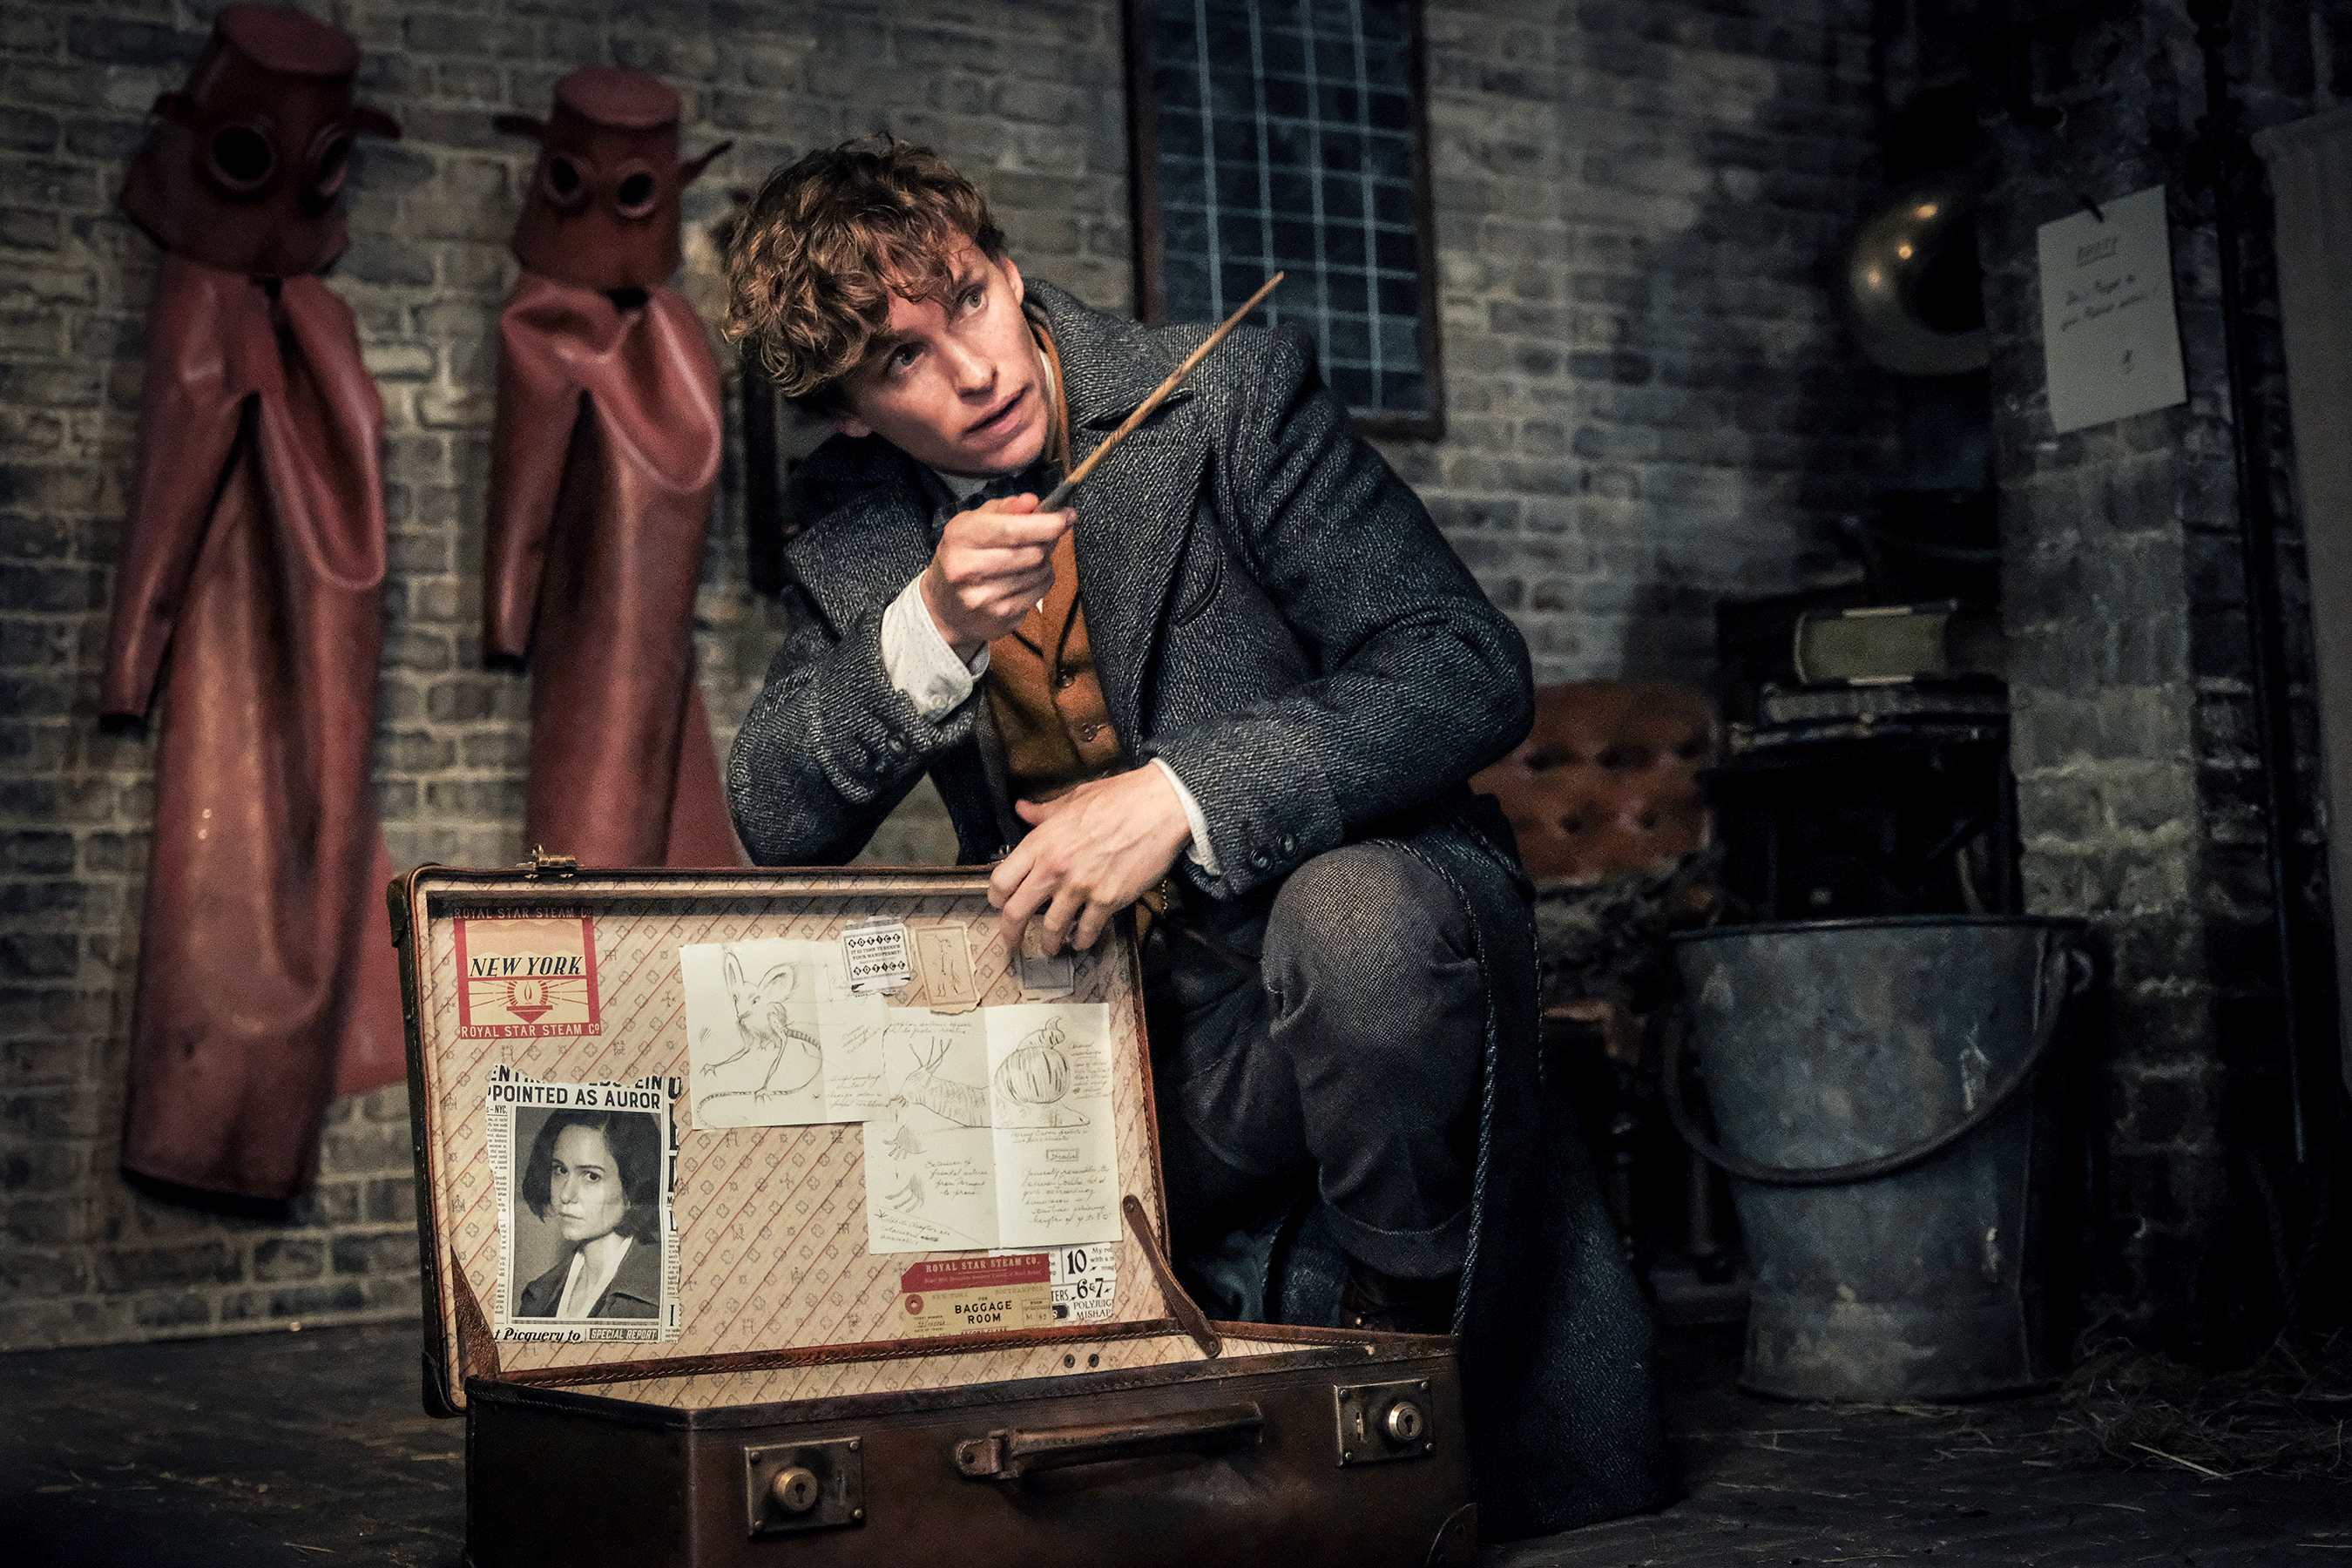 Fantastic Beasts doesn't have the Potter magic over the weekend screenshot